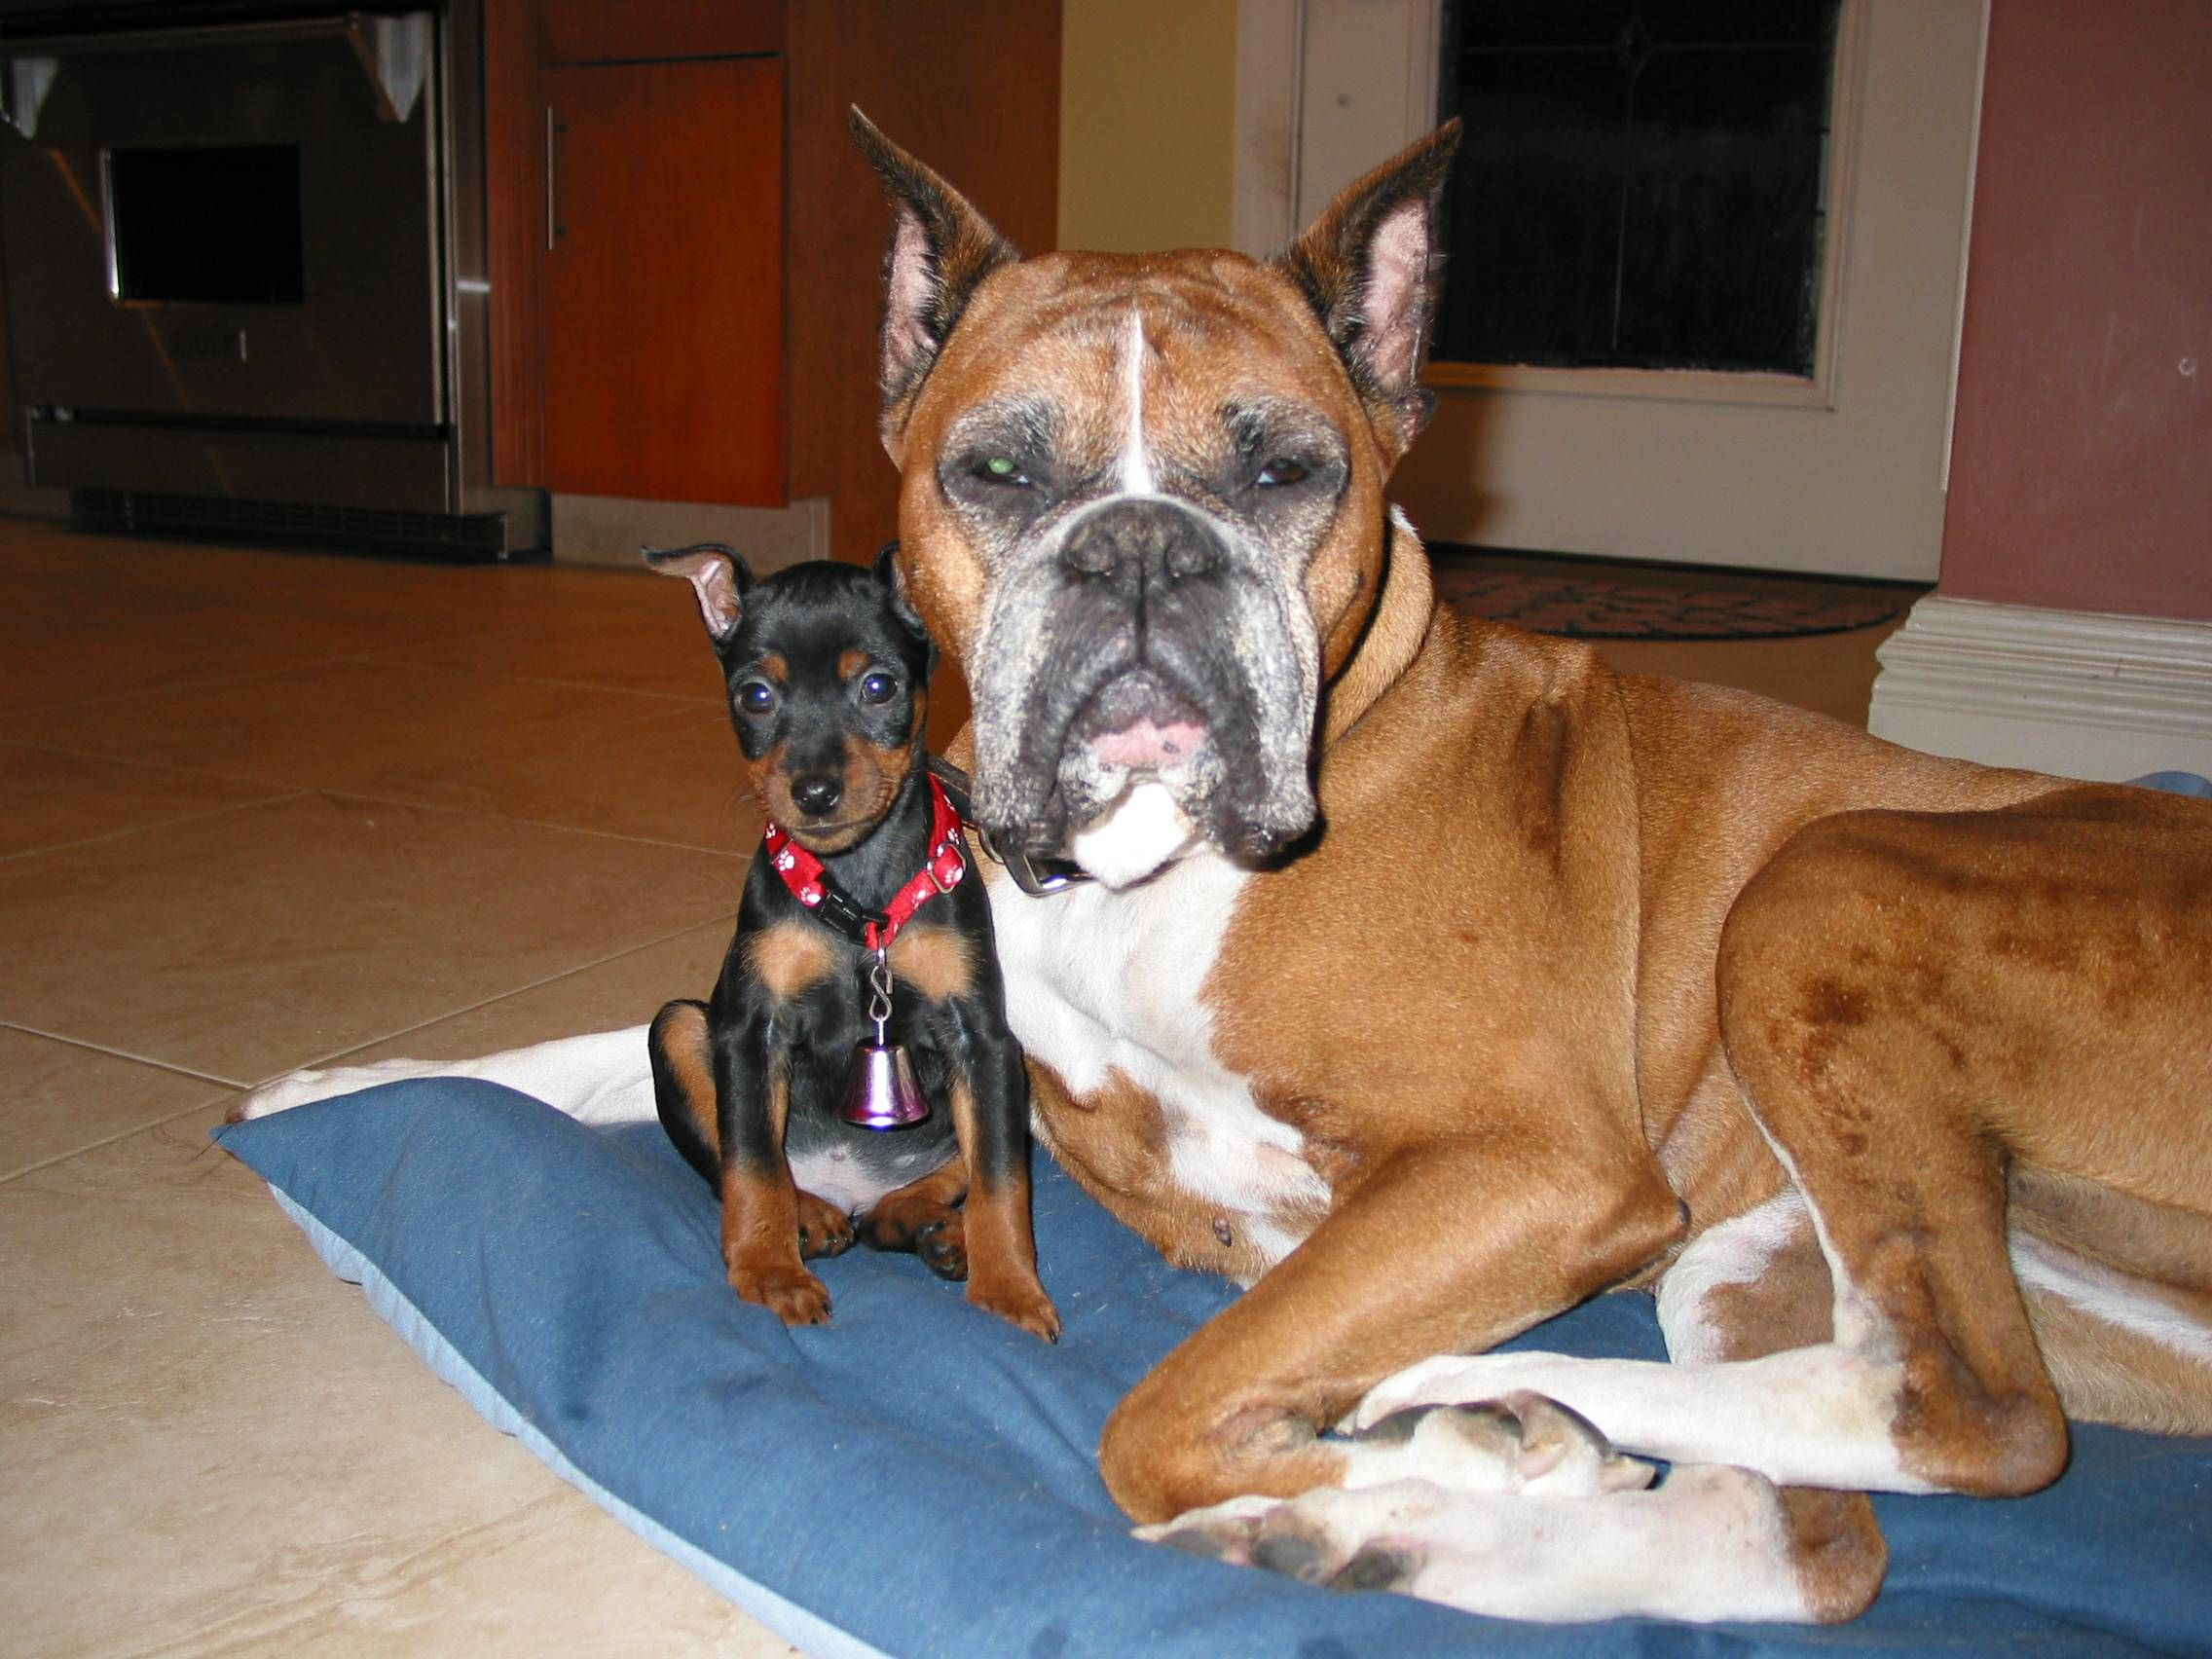 Is the miniature boxer a recognized breed?